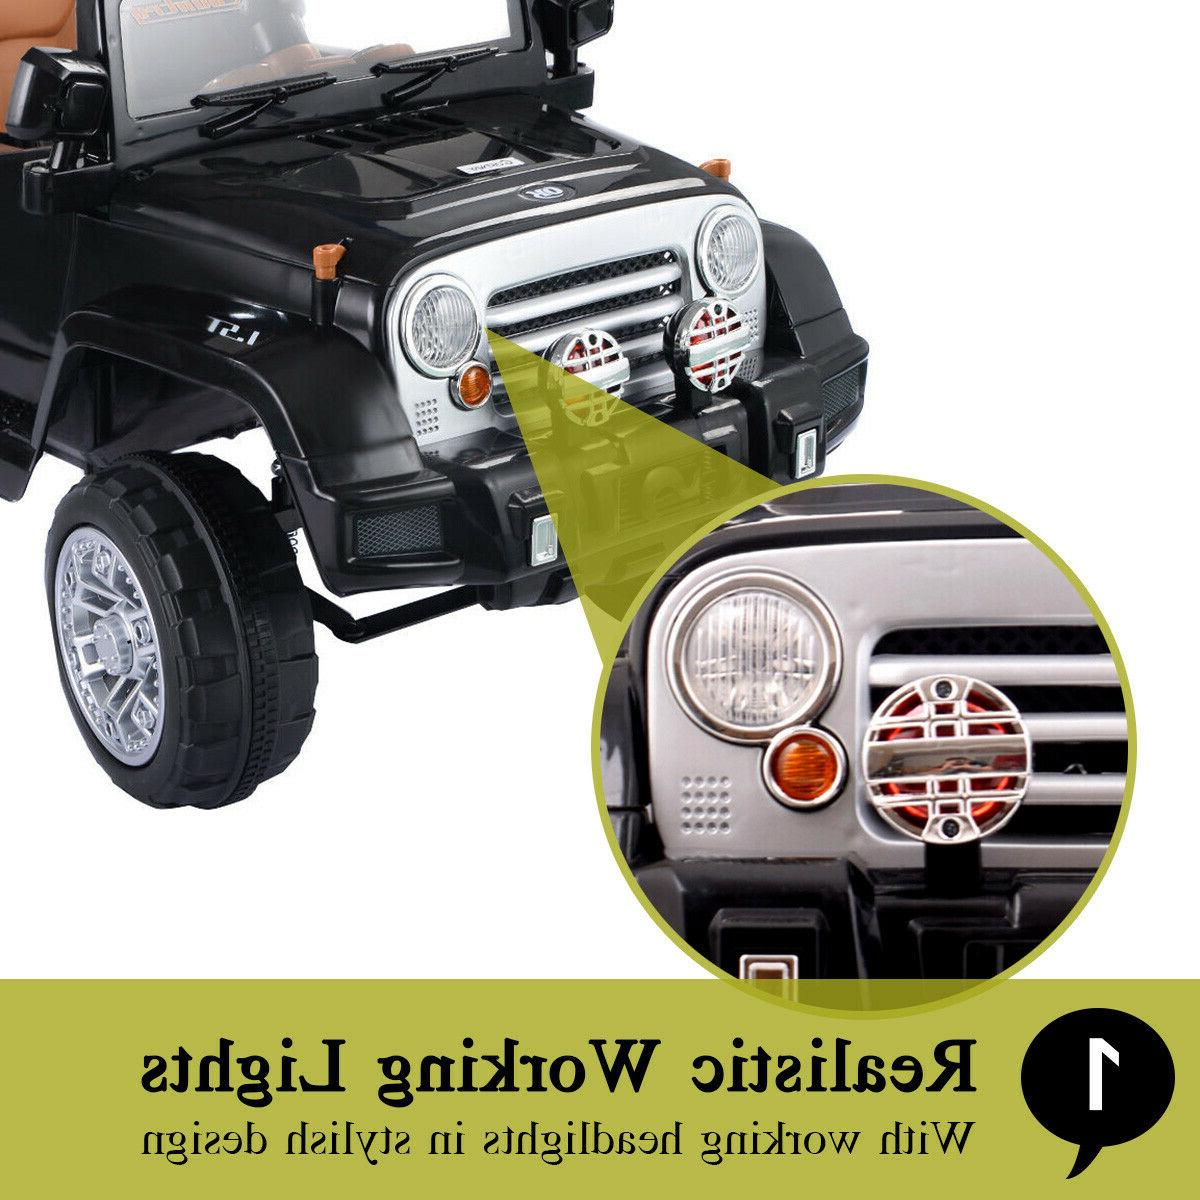 Ride Jeep Style Truck 12V Battery Toy 2 Remote Control